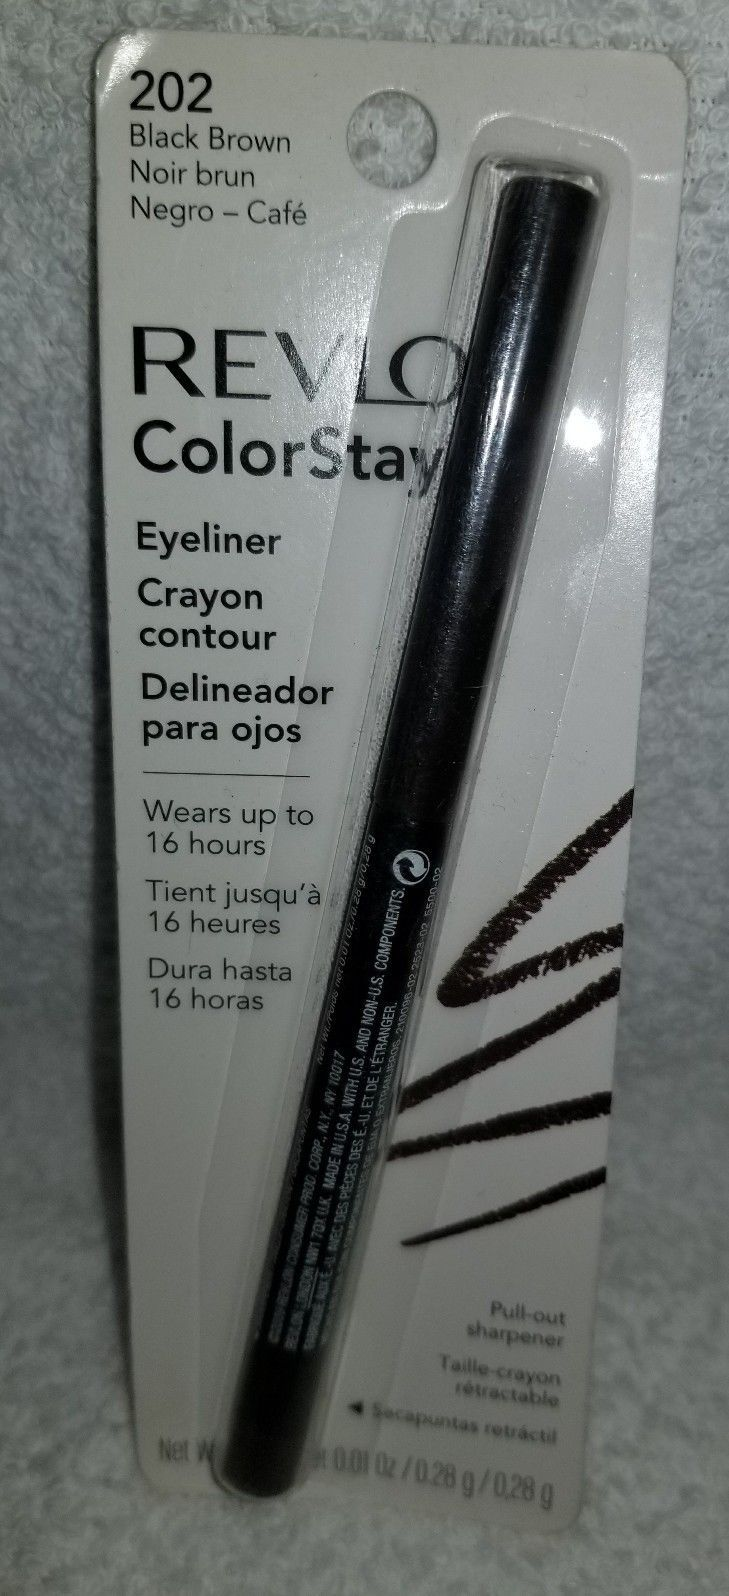 Revlon ColorStay 202 BLACK BROWN Eyeliner Softflex Pull-Out Sharpener .01 oz New